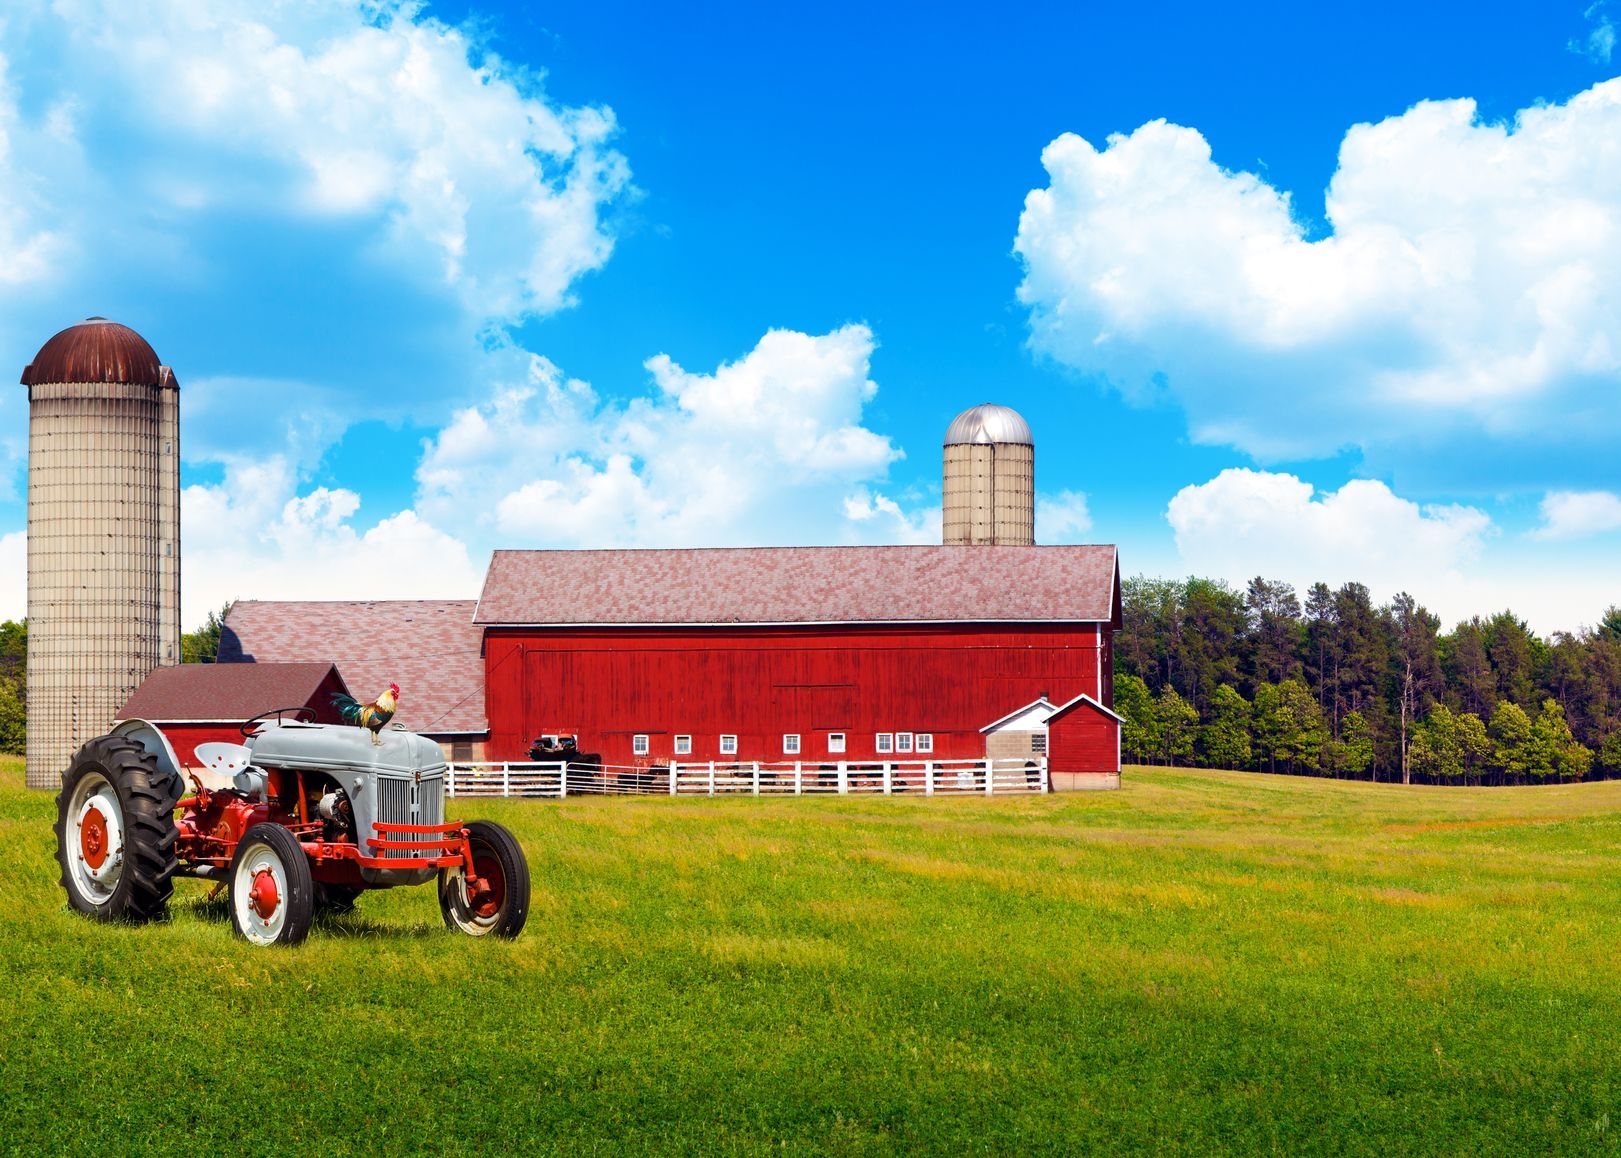 St. Louis Farm & Ranch Insurance